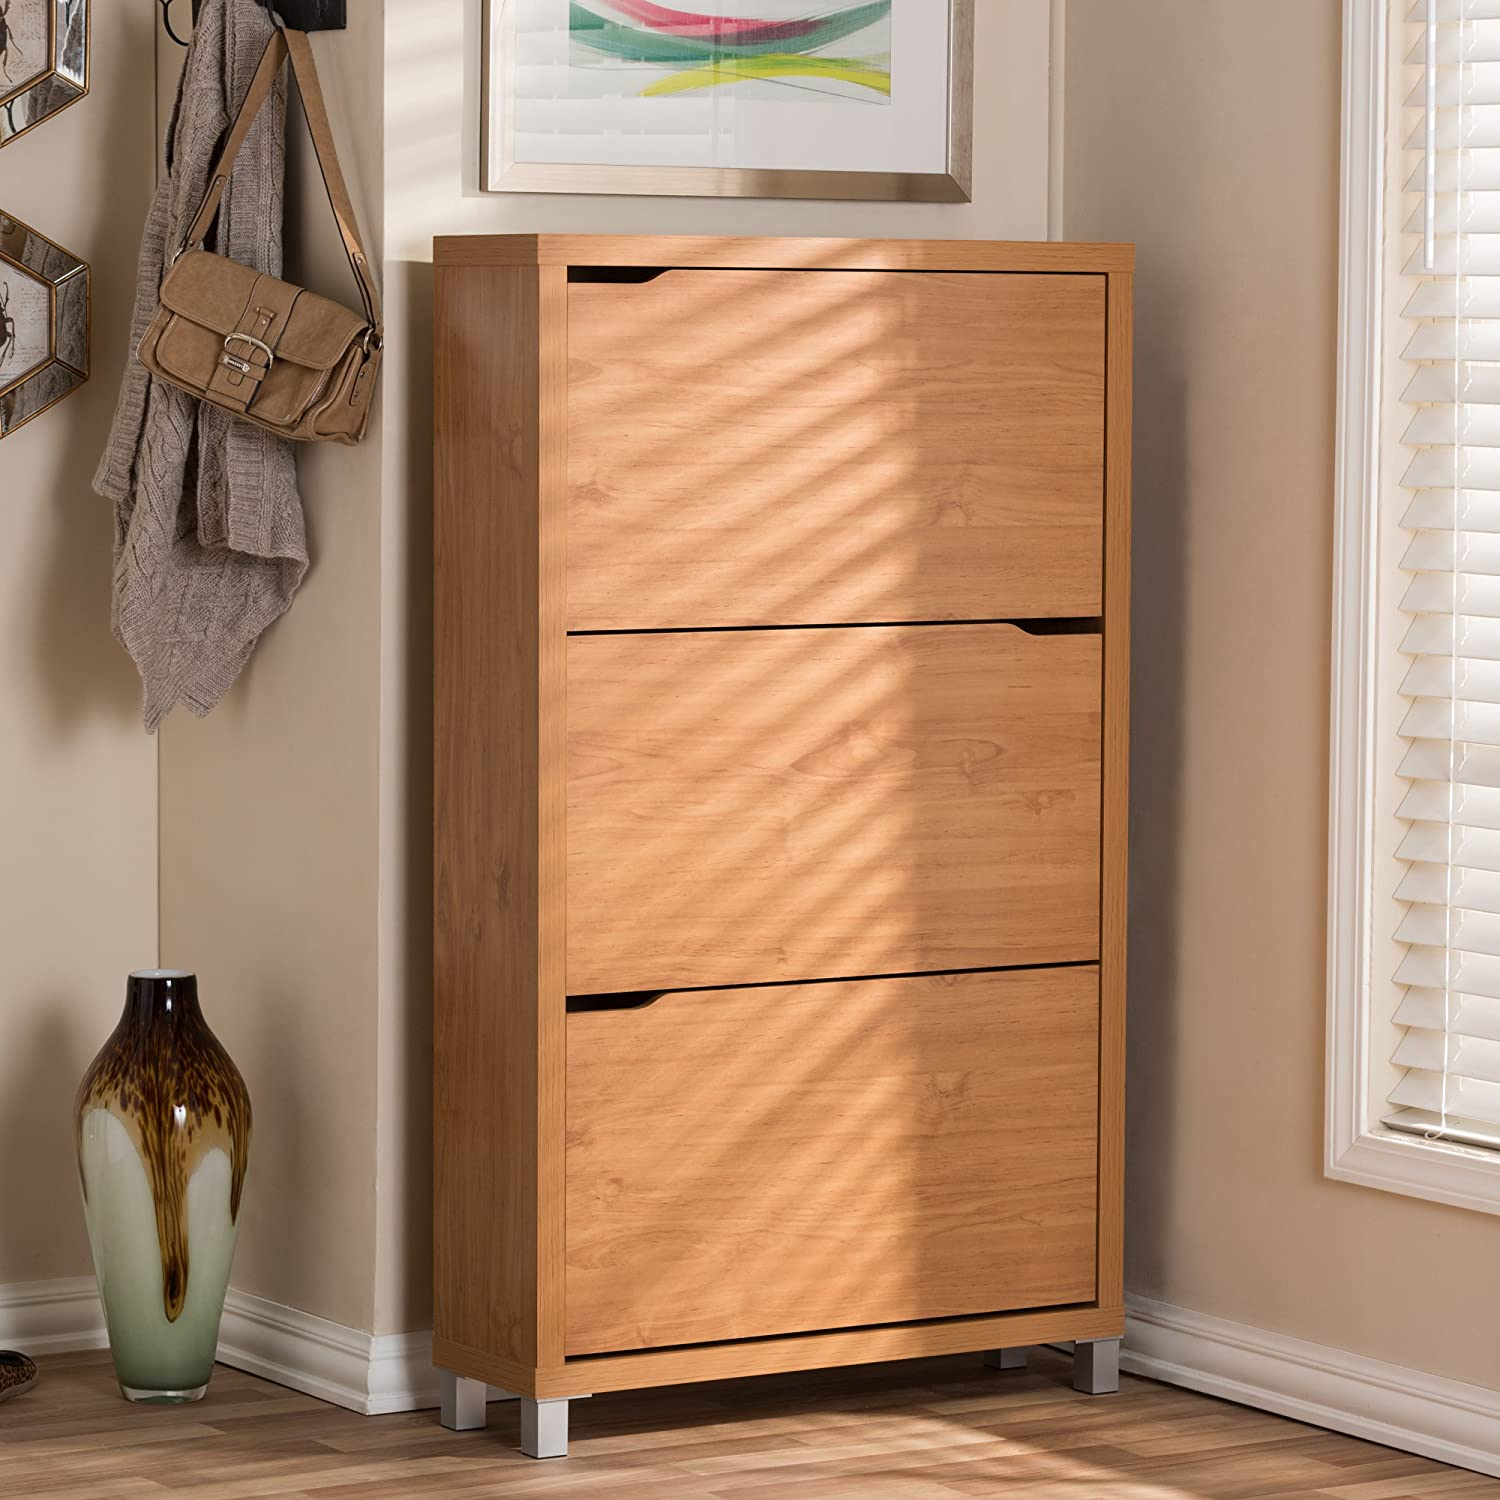 Amazon.com: Baxton Studio Simms Modern Shoe Cabinet, Maple: Home U0026 Kitchen